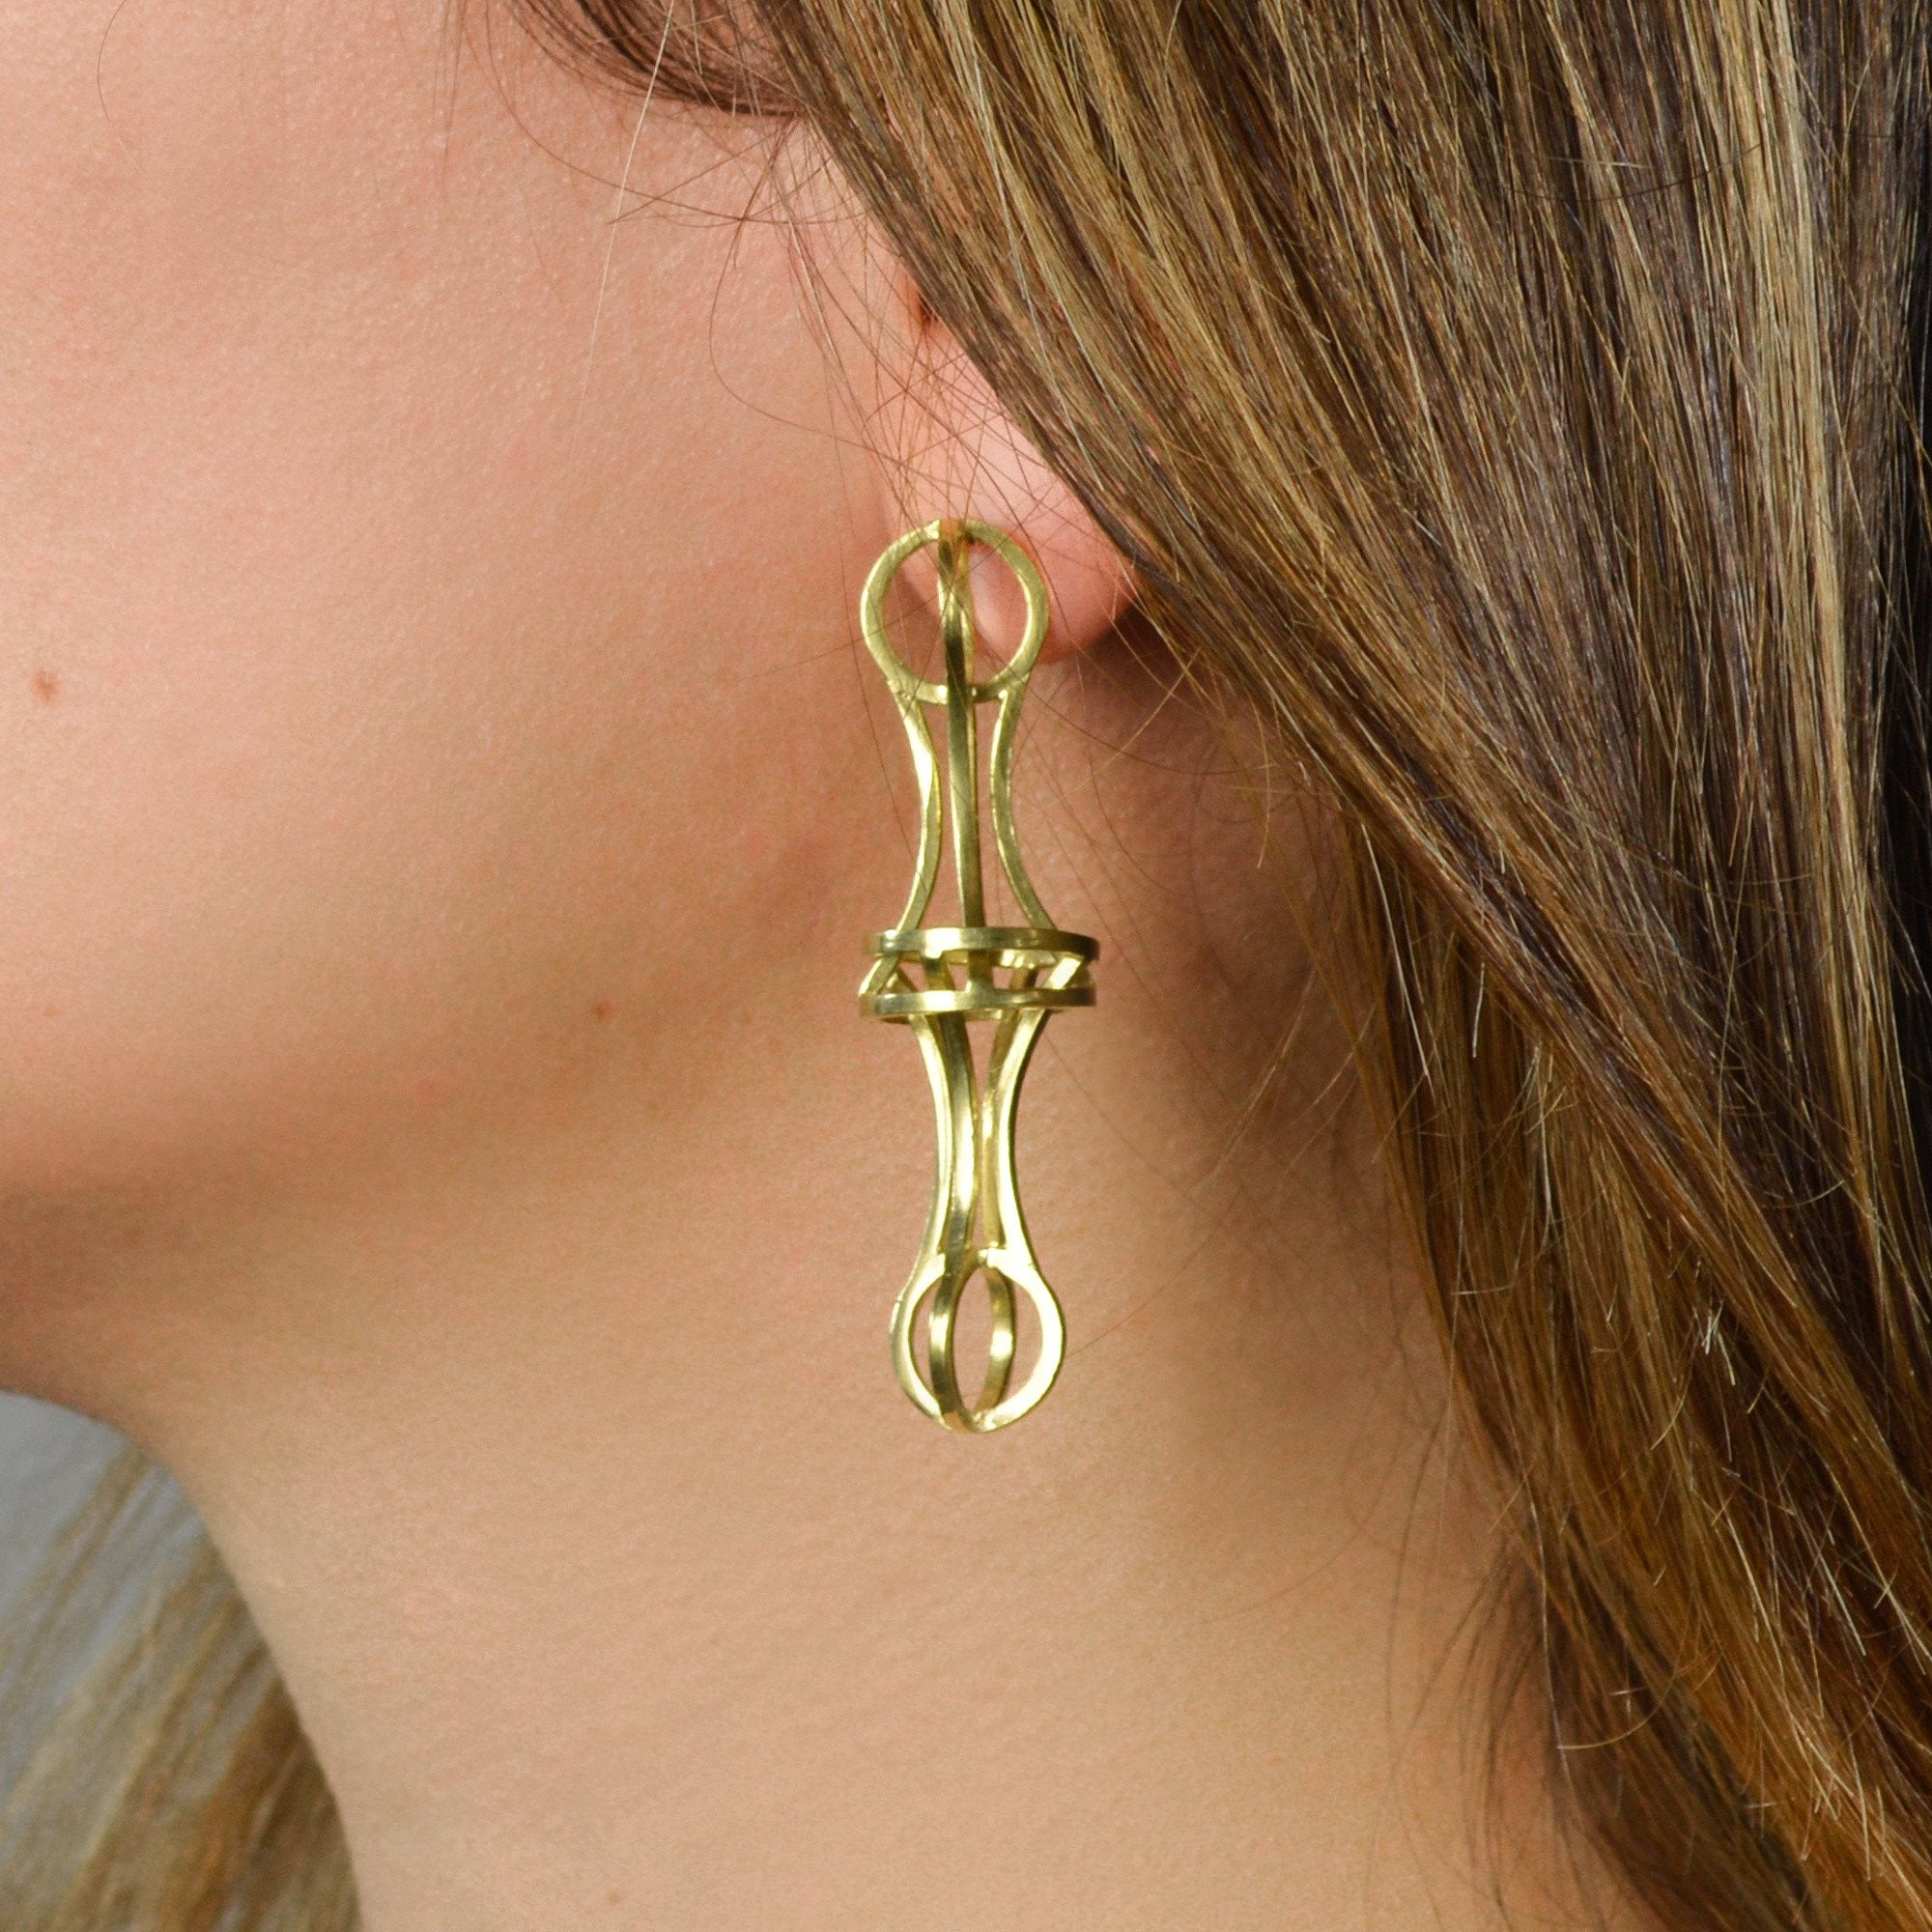 Vertebrae Link Earrings in 18k Gold